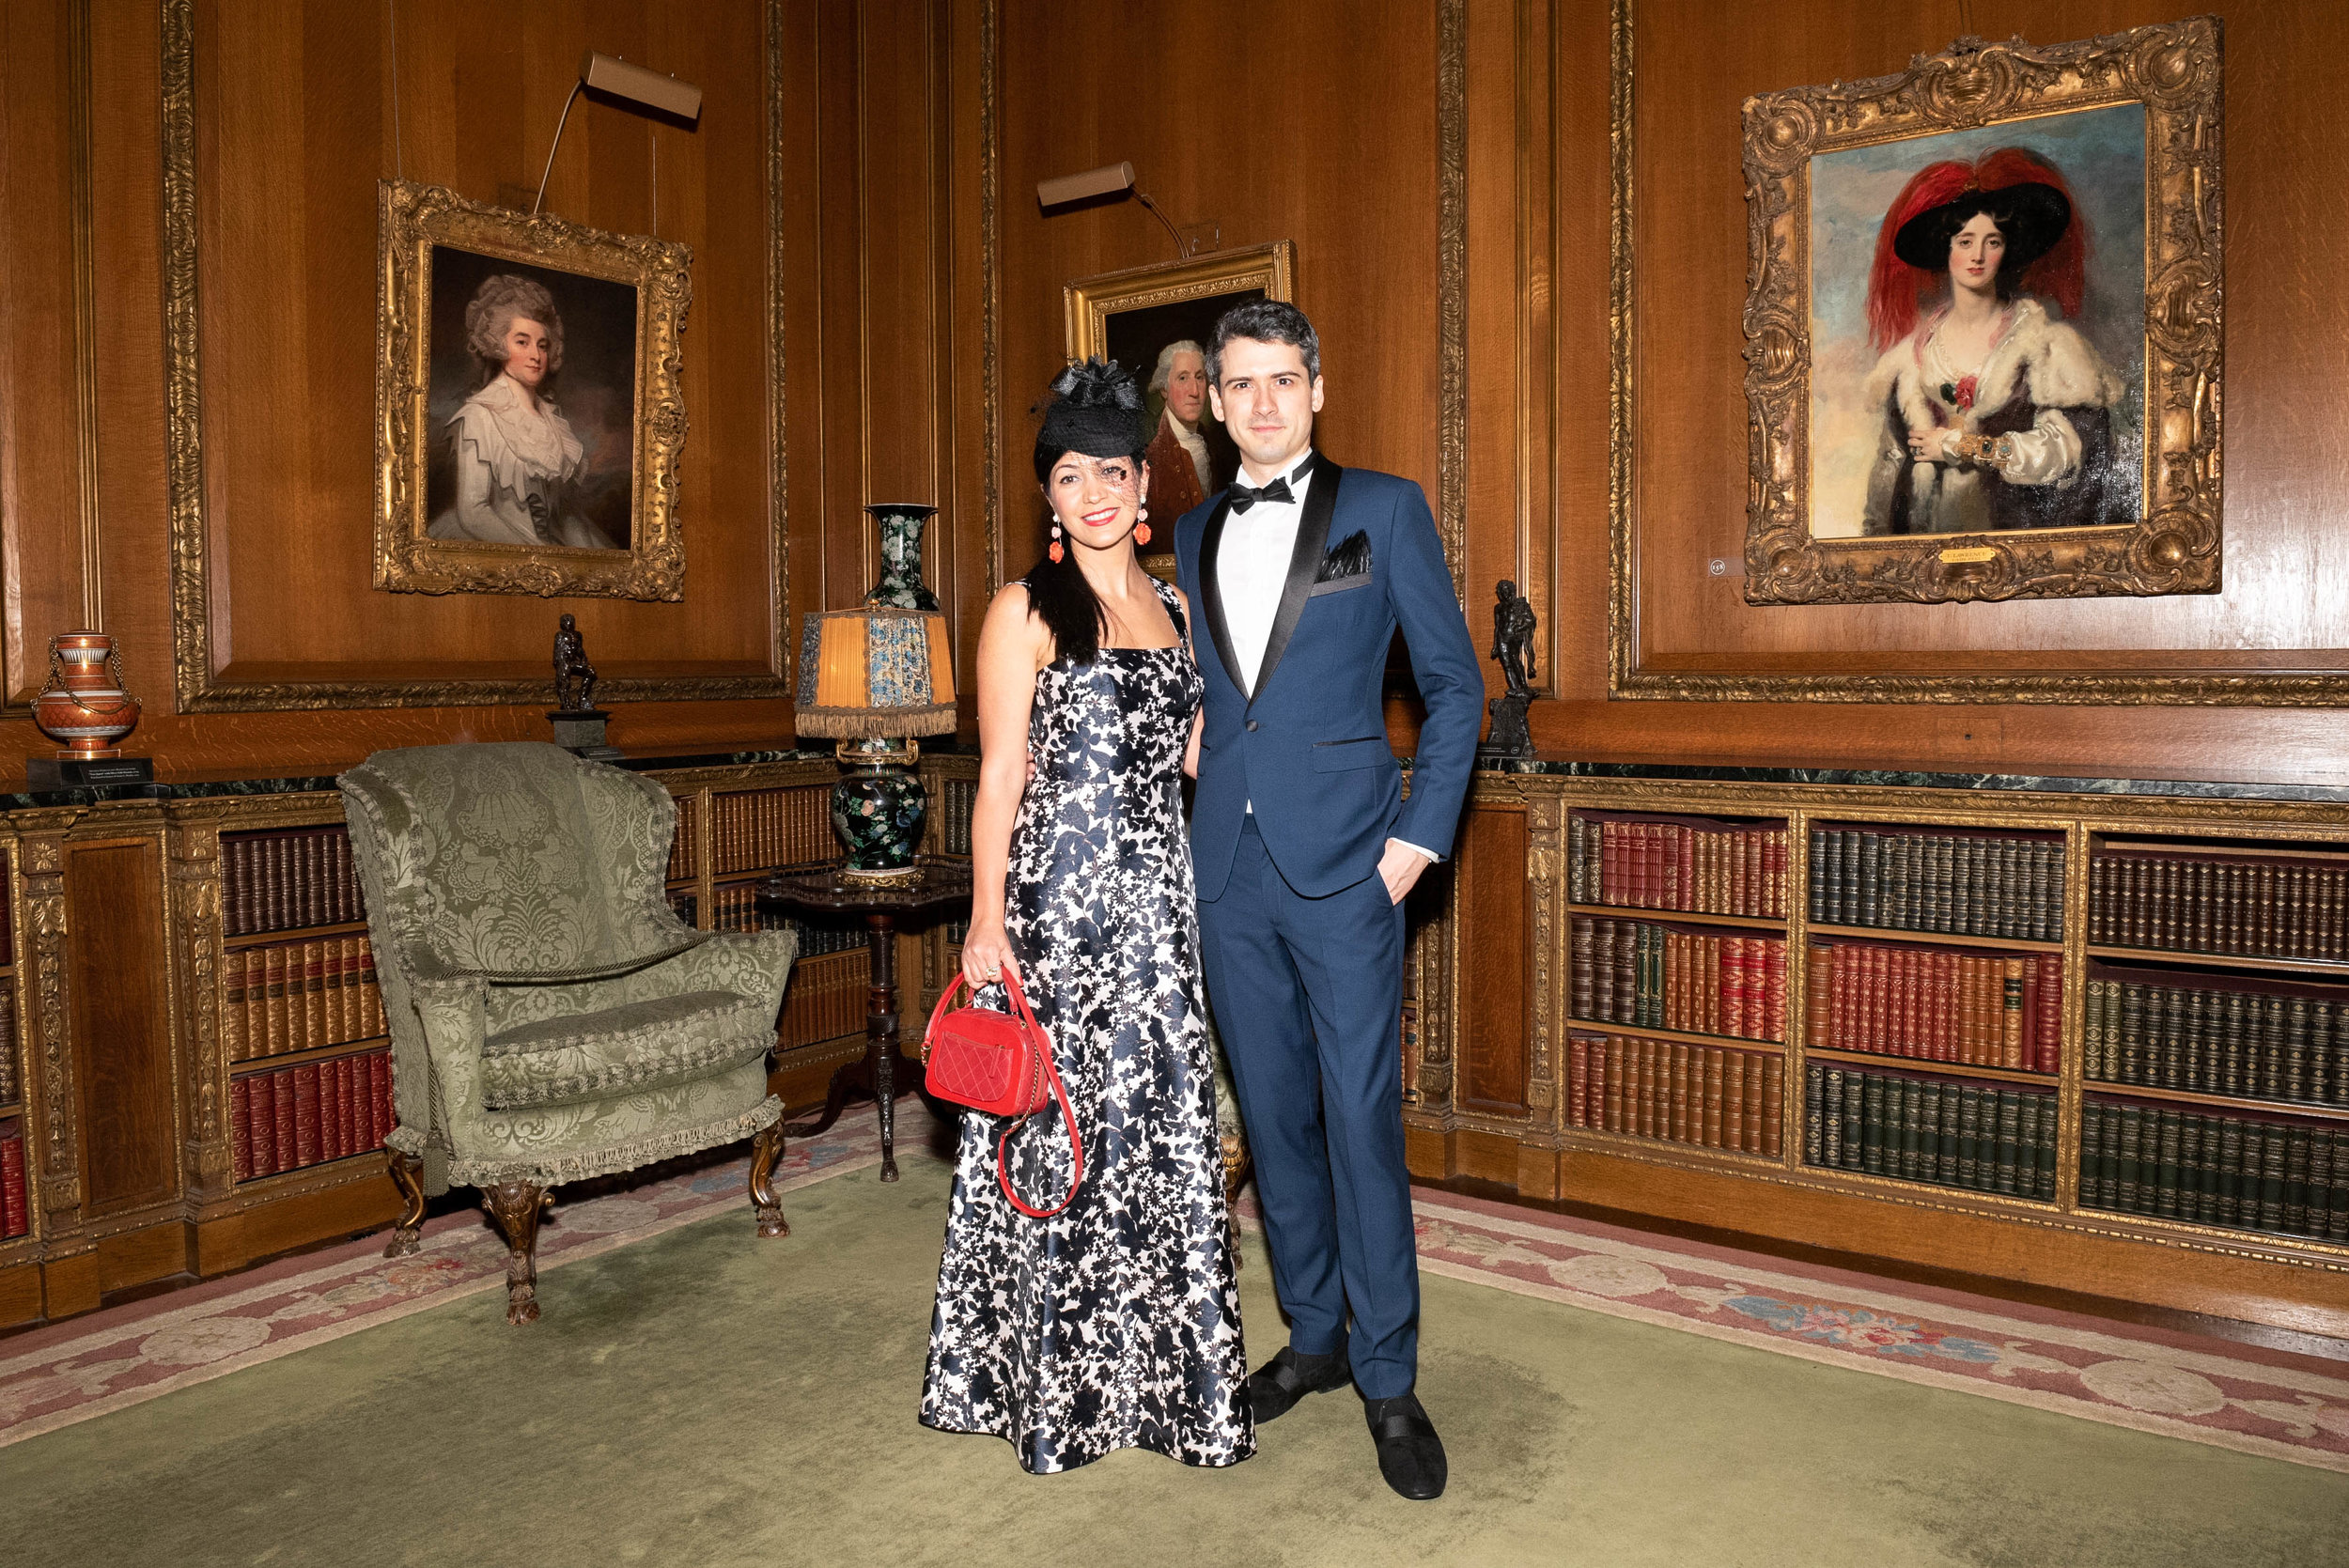 Avishan Bodjnoud and Adam McDaniel attend The Frick Collection's 20th Annual Young Fellows Ball at 1 East 70th Street on Thursday, March 21st, 2019. Photography, Courtesy of The Frick Collection.